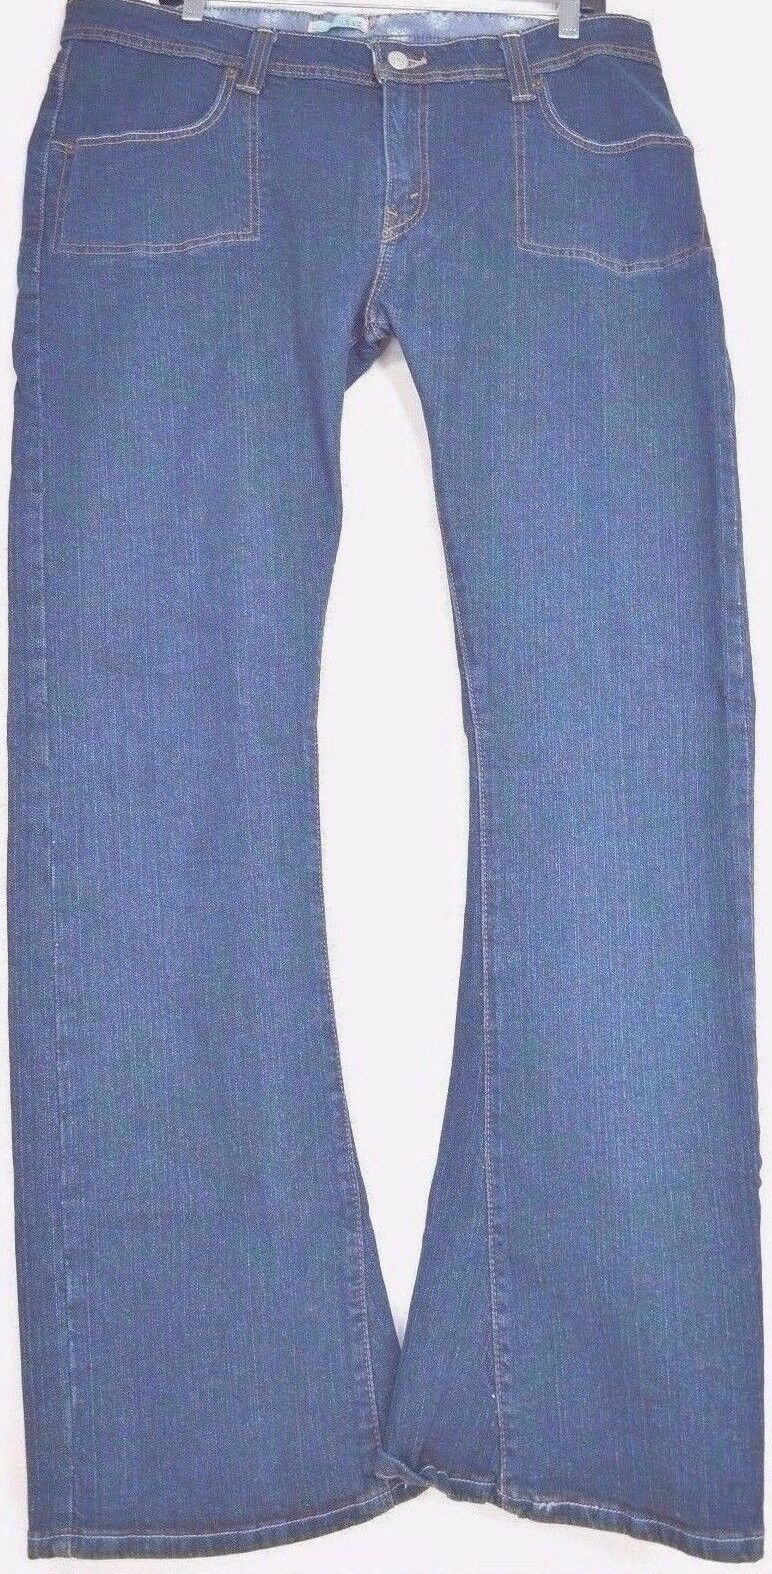 Levi 542 jeans SZ 16 x 33 M bootcut mid rise dark wash stretch W37 L33 tall long